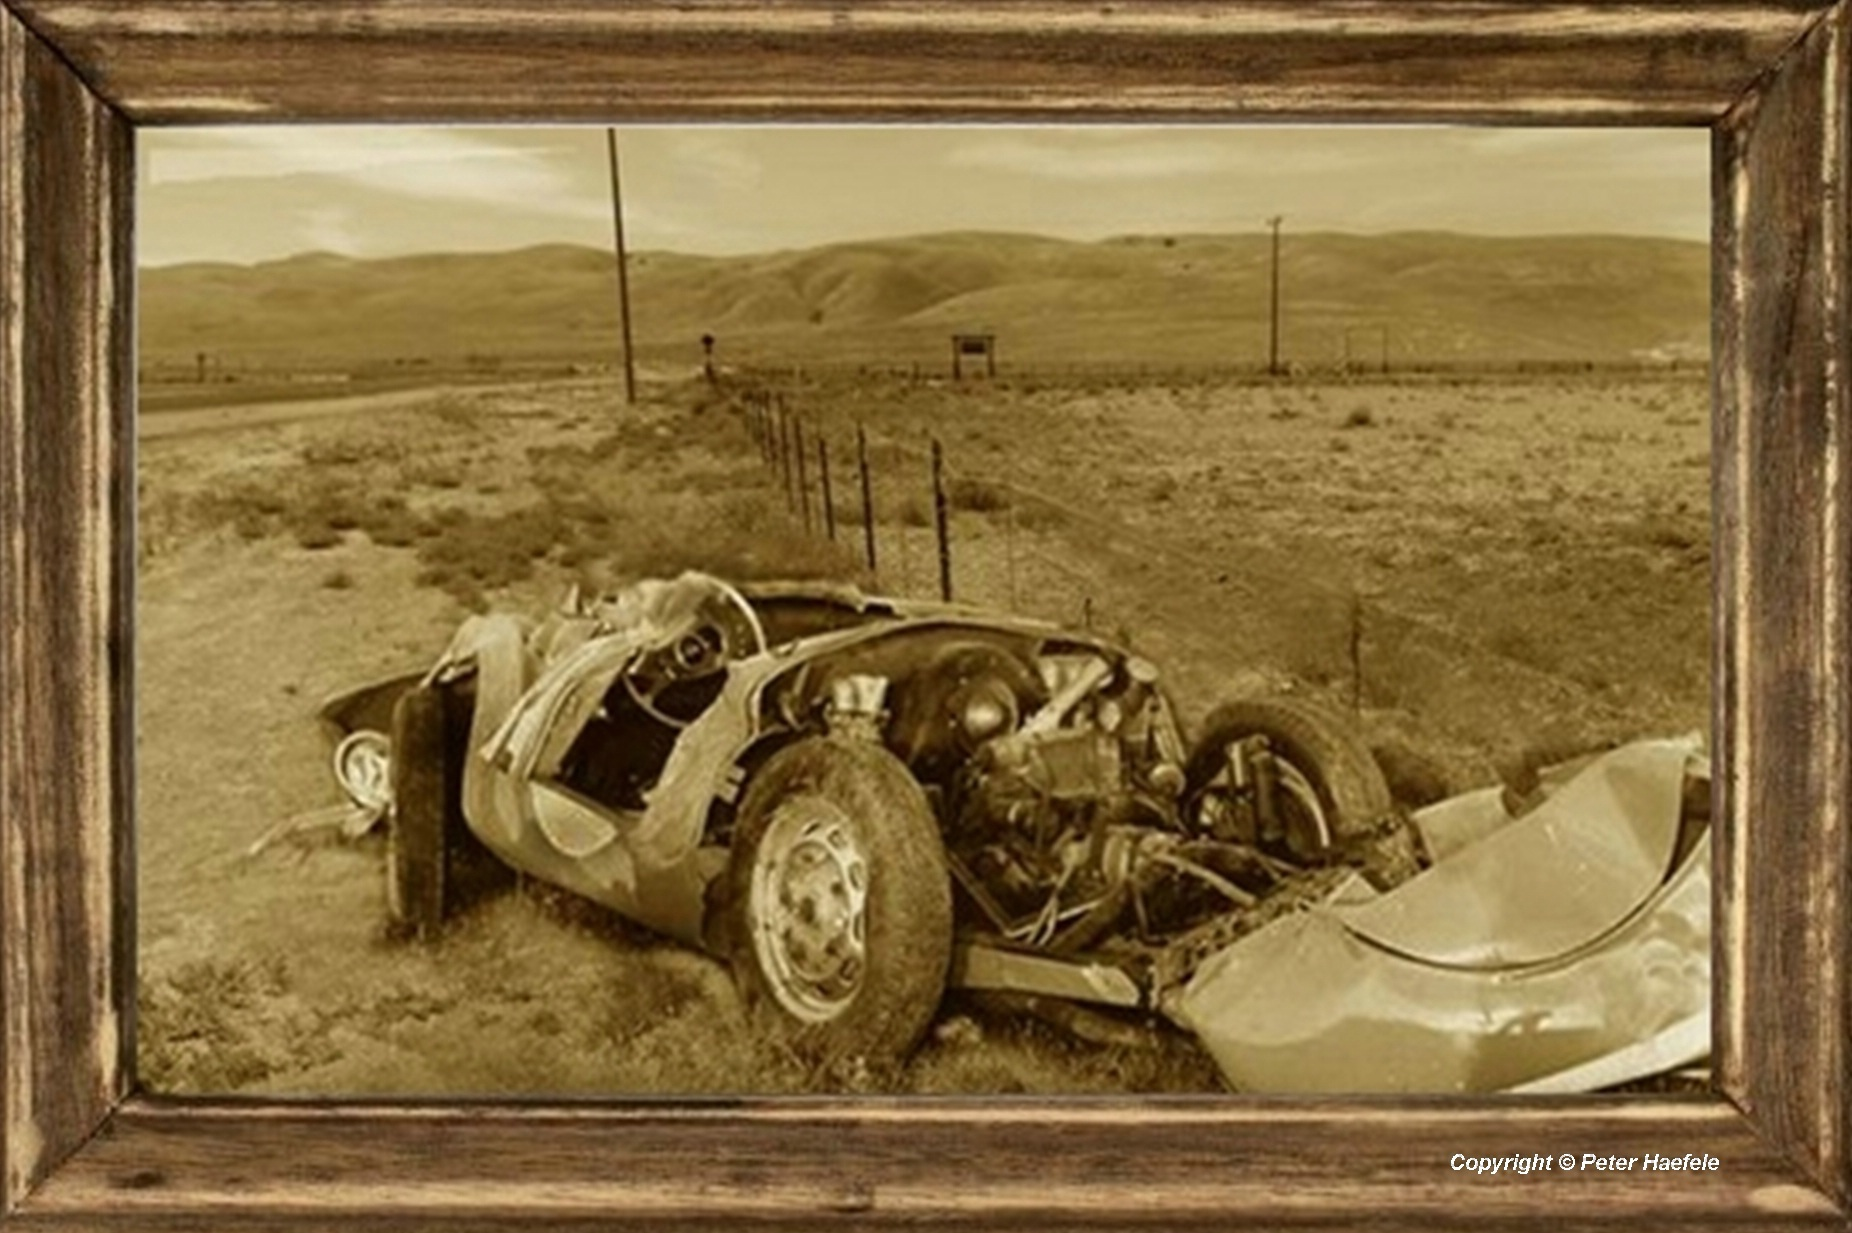 James Dean - Porsche 550 Spyder - Car Wreck - Cholame - Kalifornien